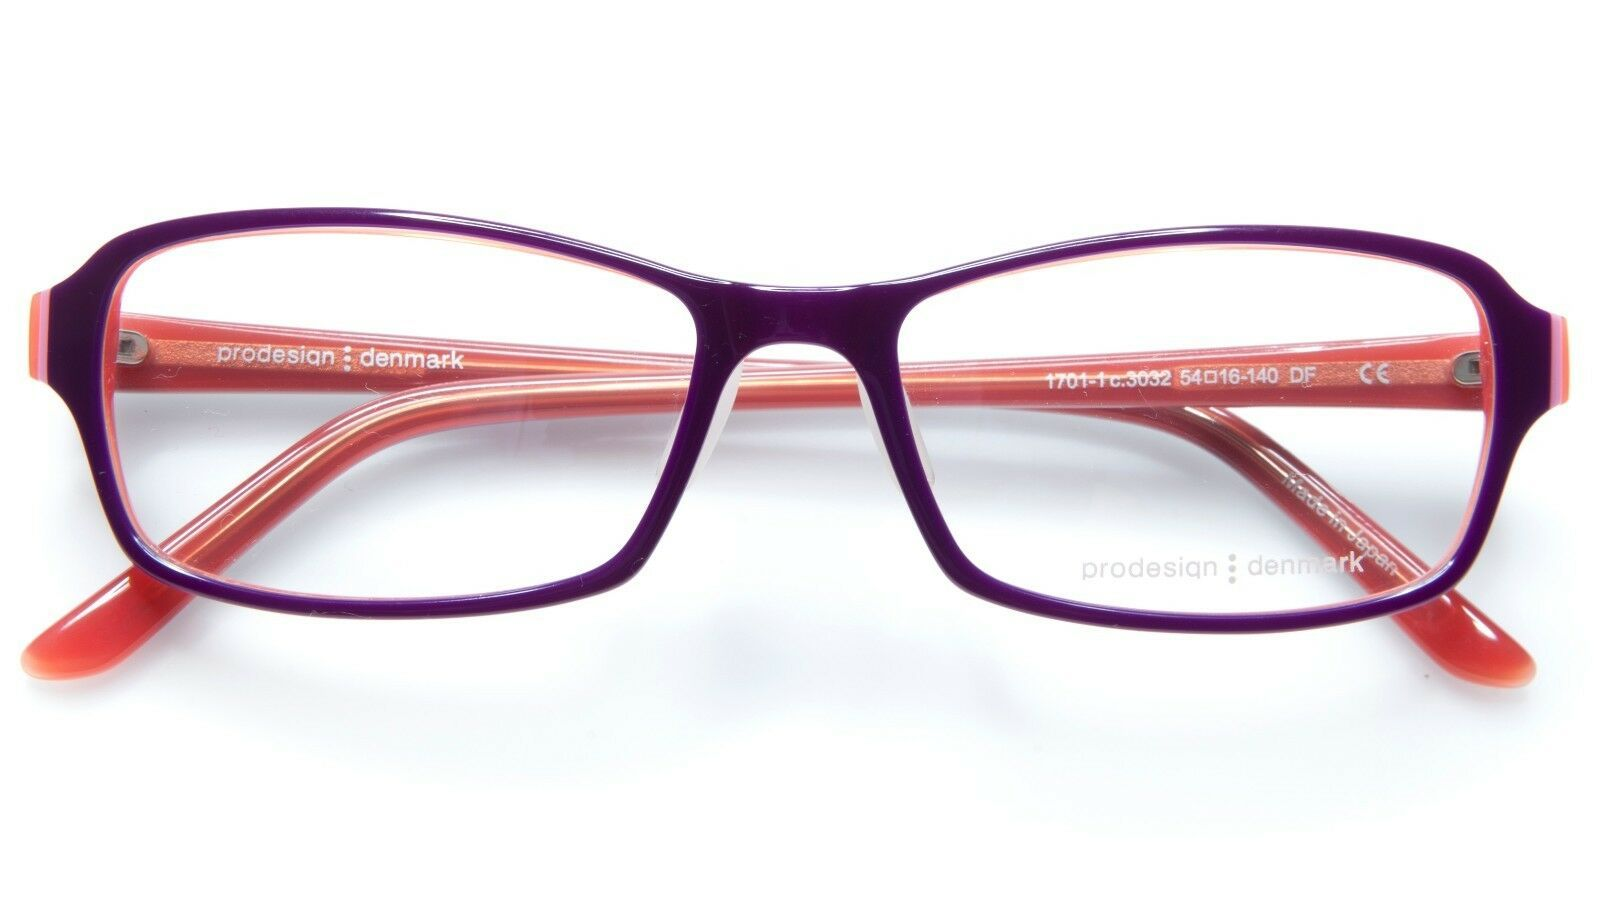 NEW PRODESIGN DENMARK 1701-1 c.3032 LILAC EYEGLASSES FRAME 54-16-140 B33mm Japan